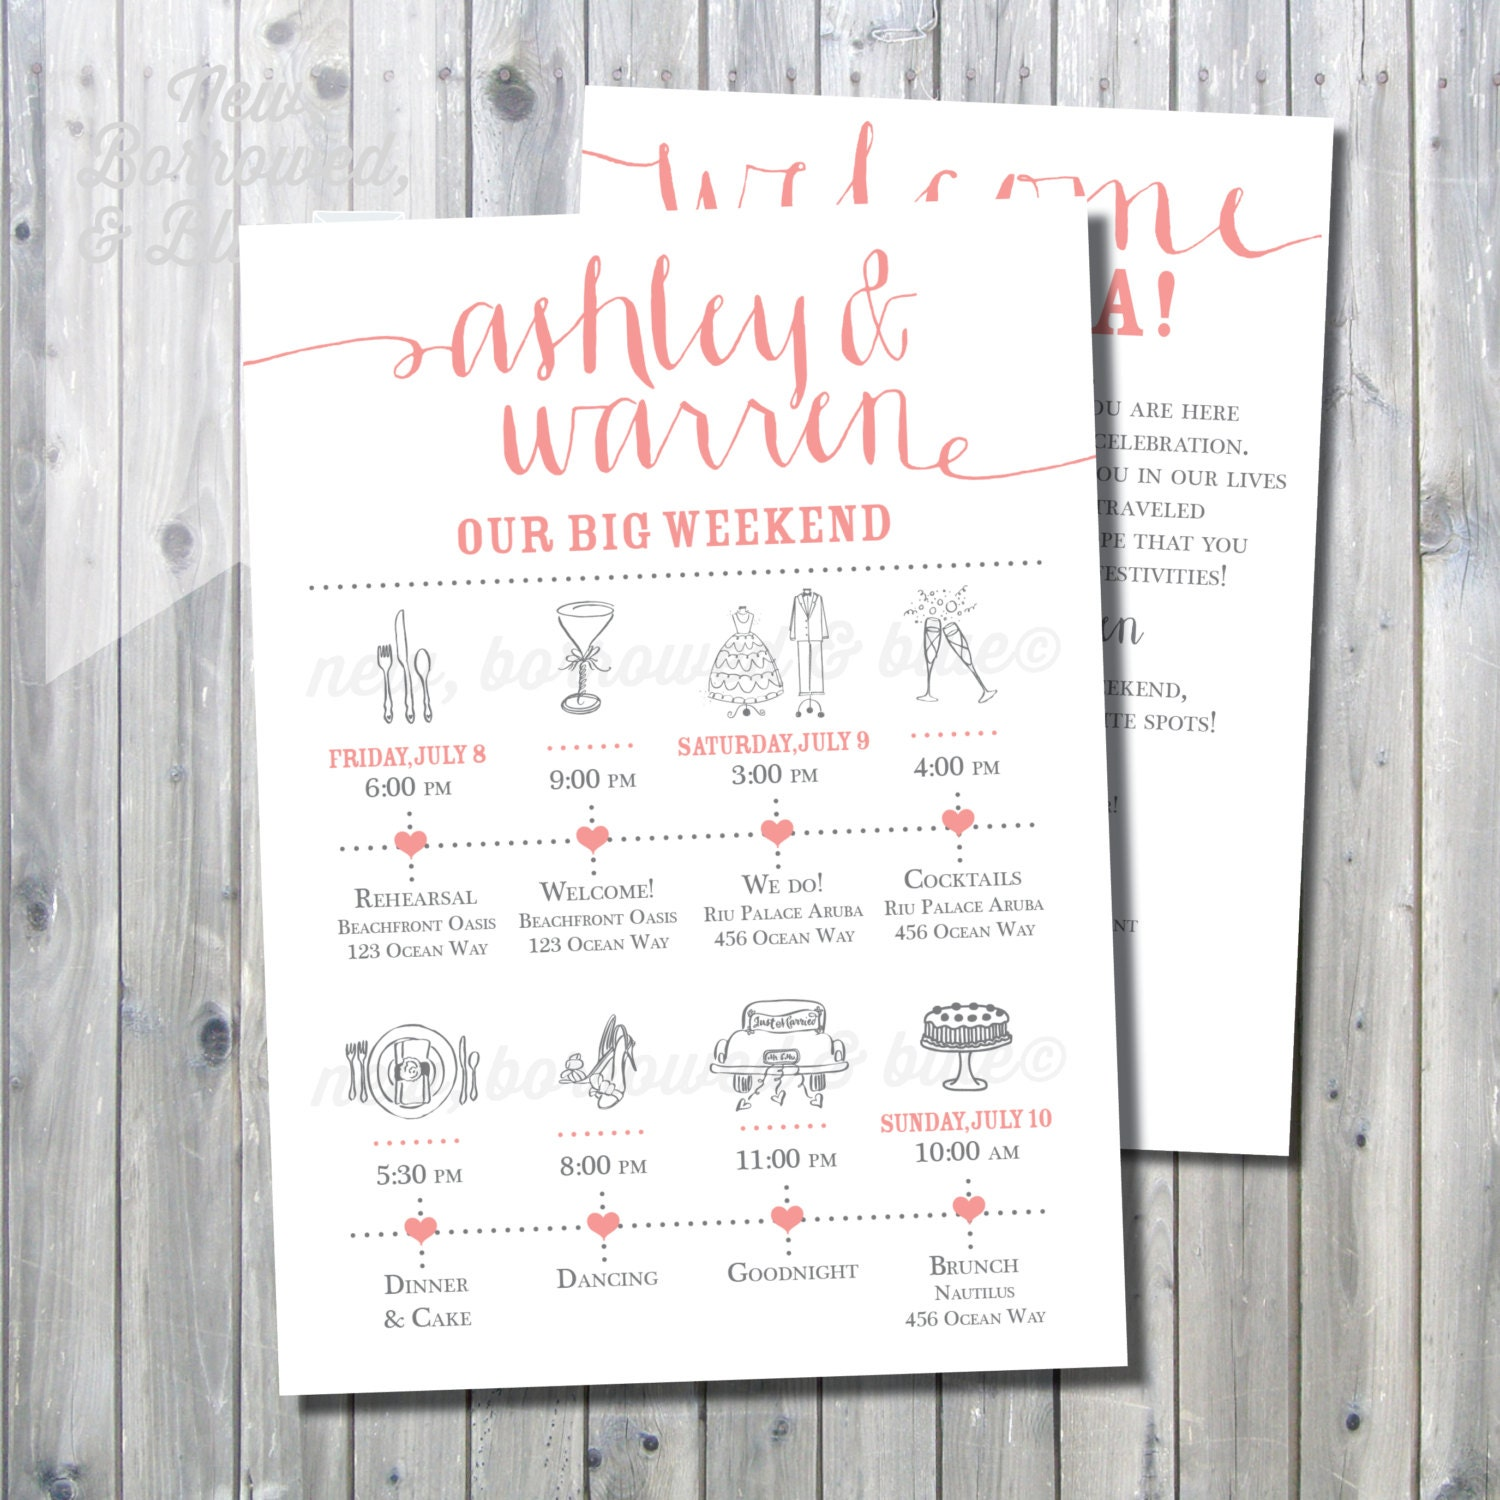 Printable wedding itinerary timeline with welcome letter zoom thecheapjerseys Image collections